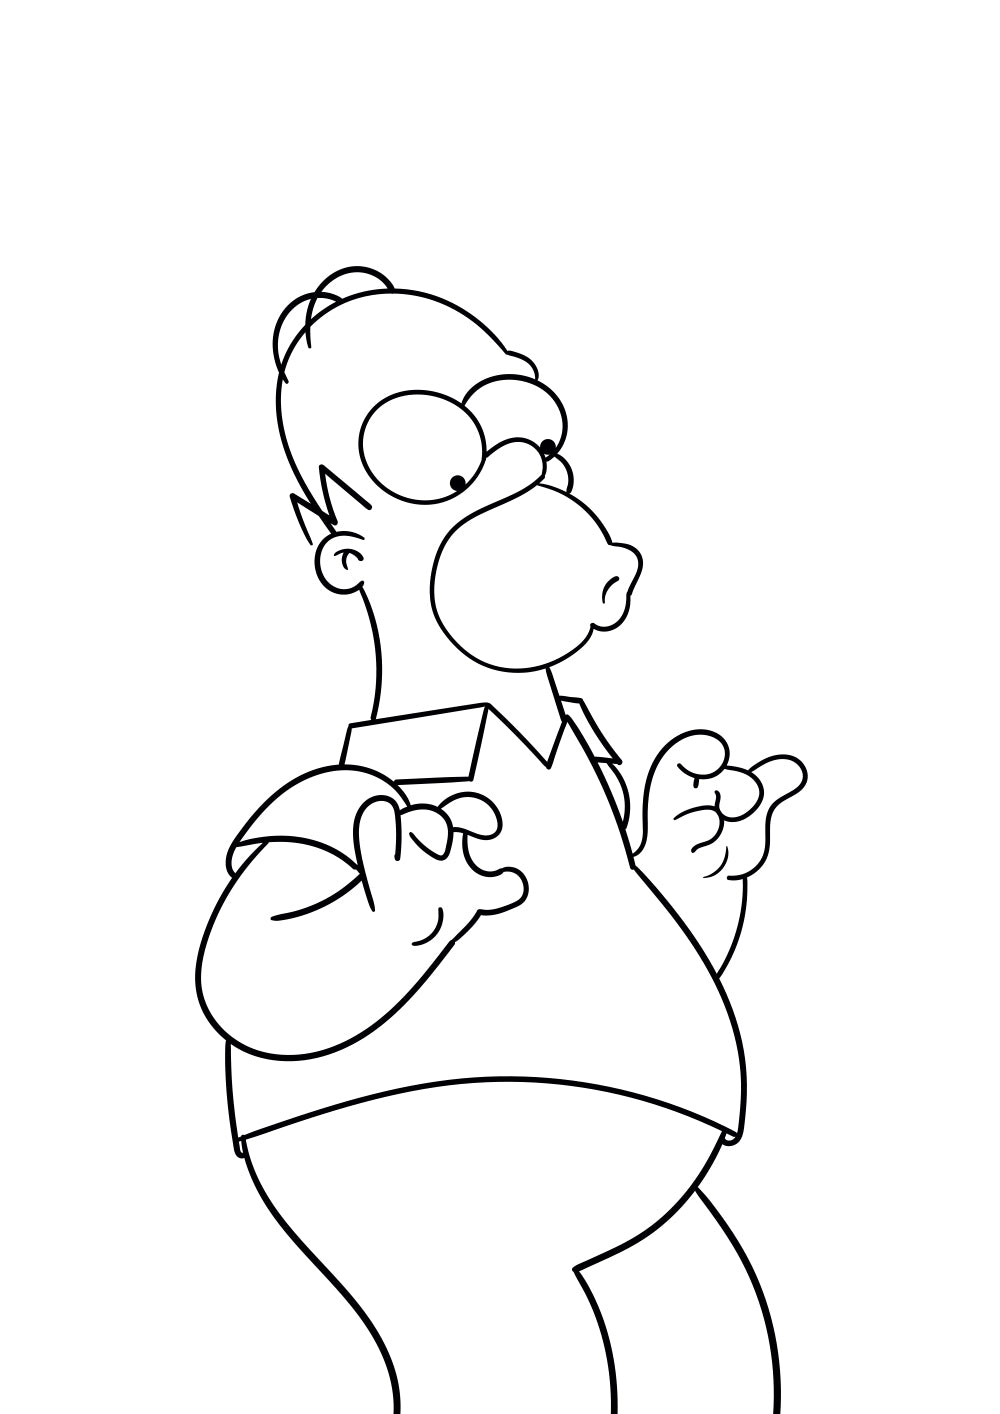 Dessin au trait noir d'Homer Simpson impatient.